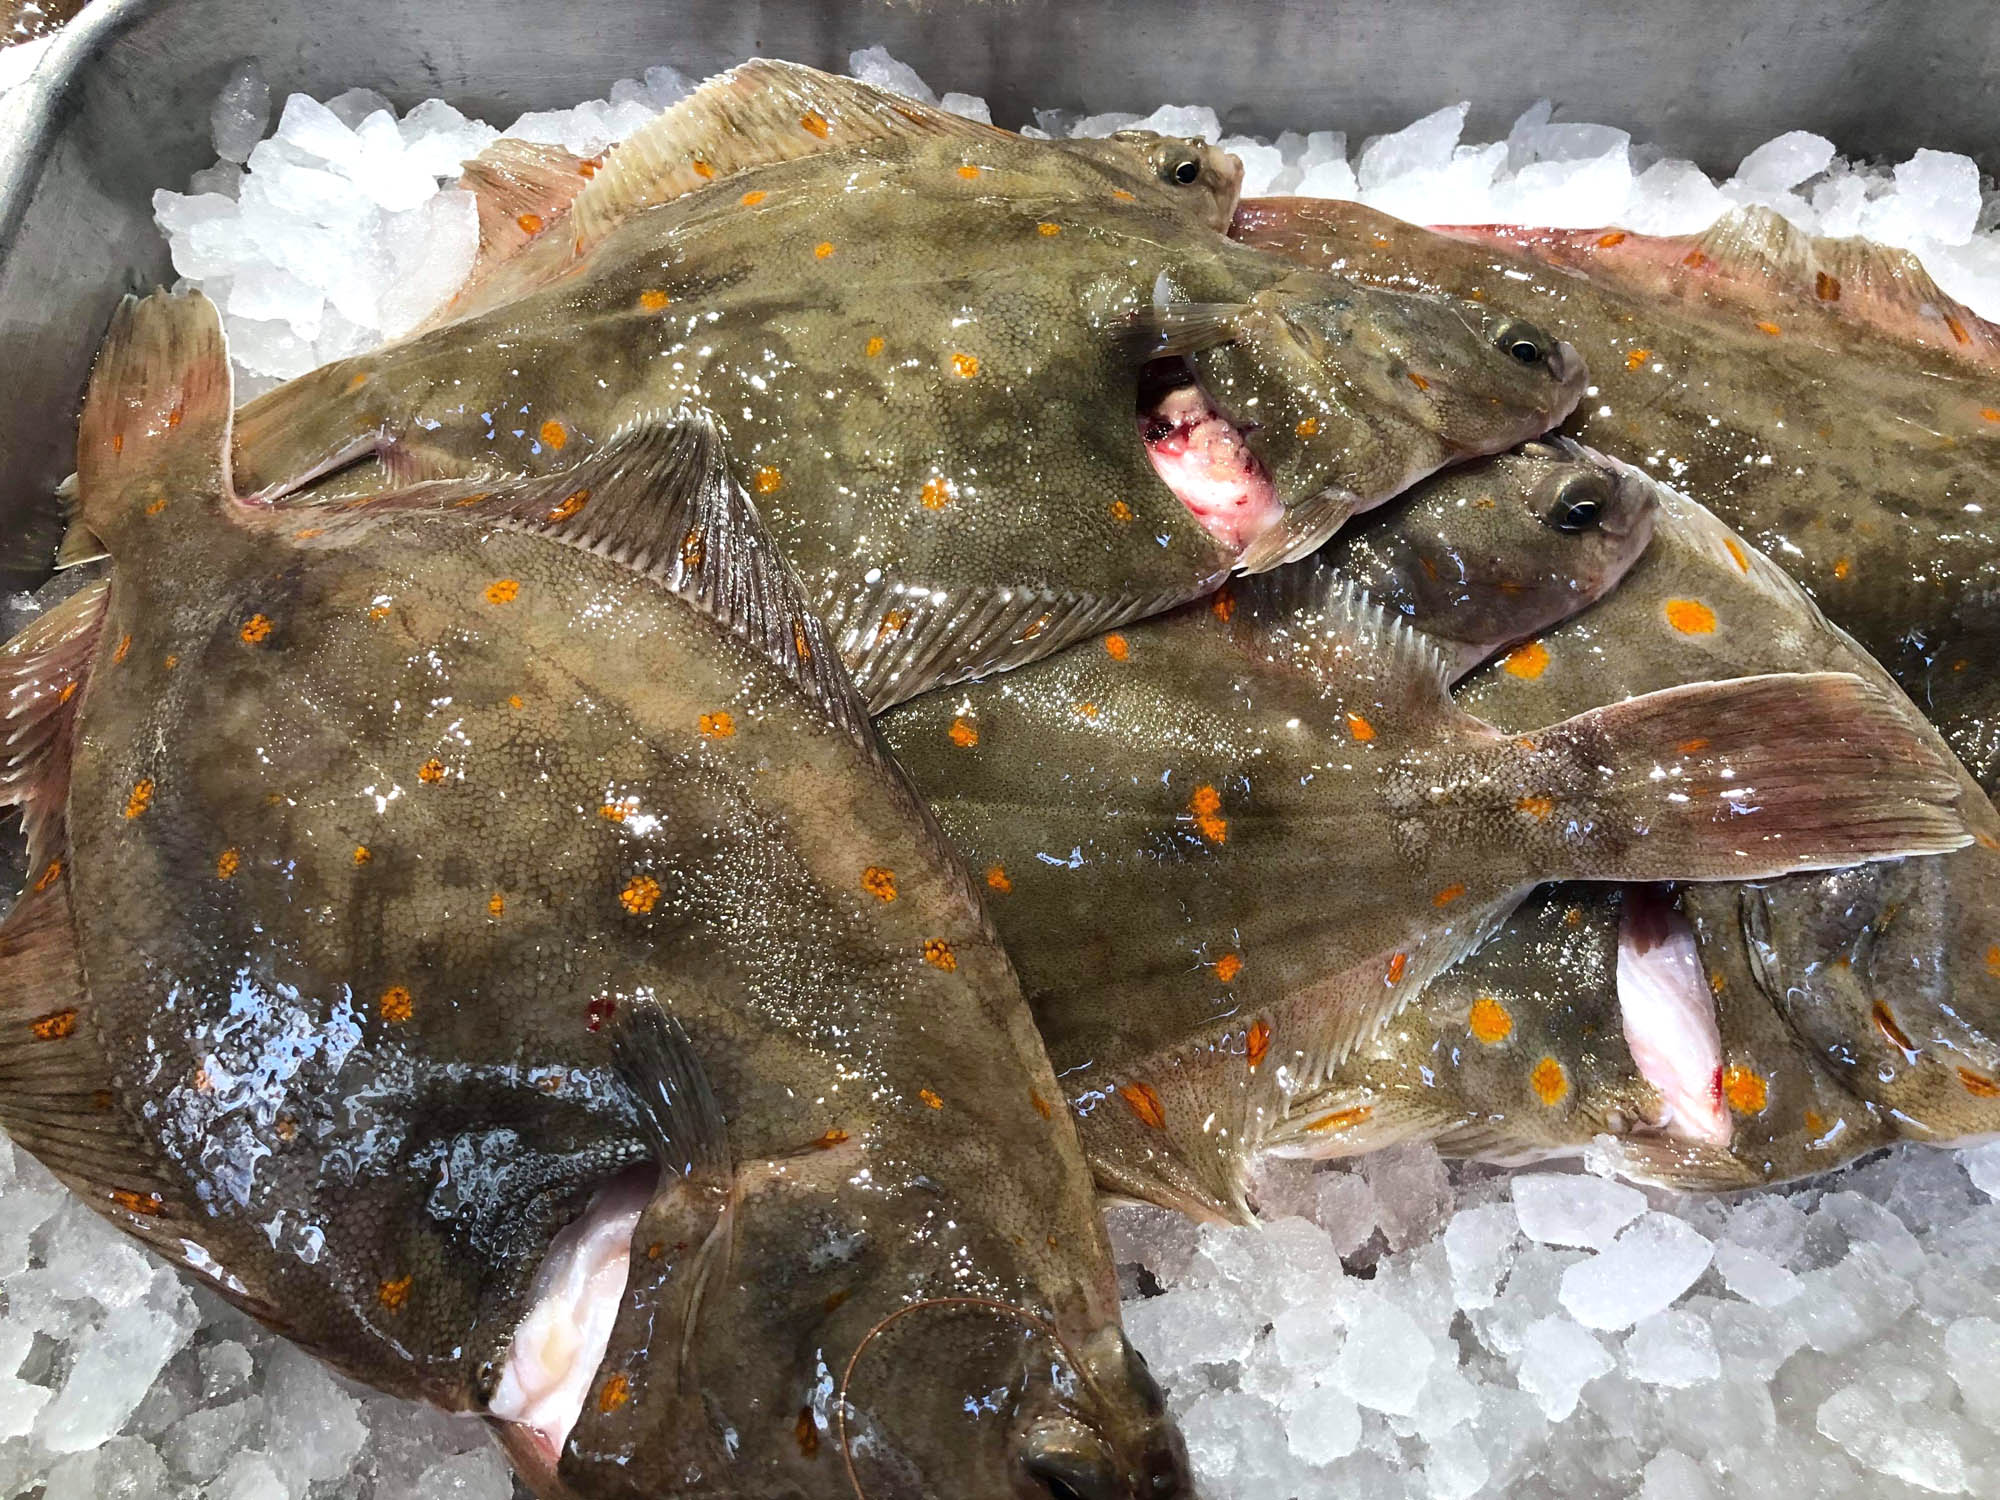 Local plaice: dust both sides with seasoned flour and pan fry it then eat. Simple and delicious